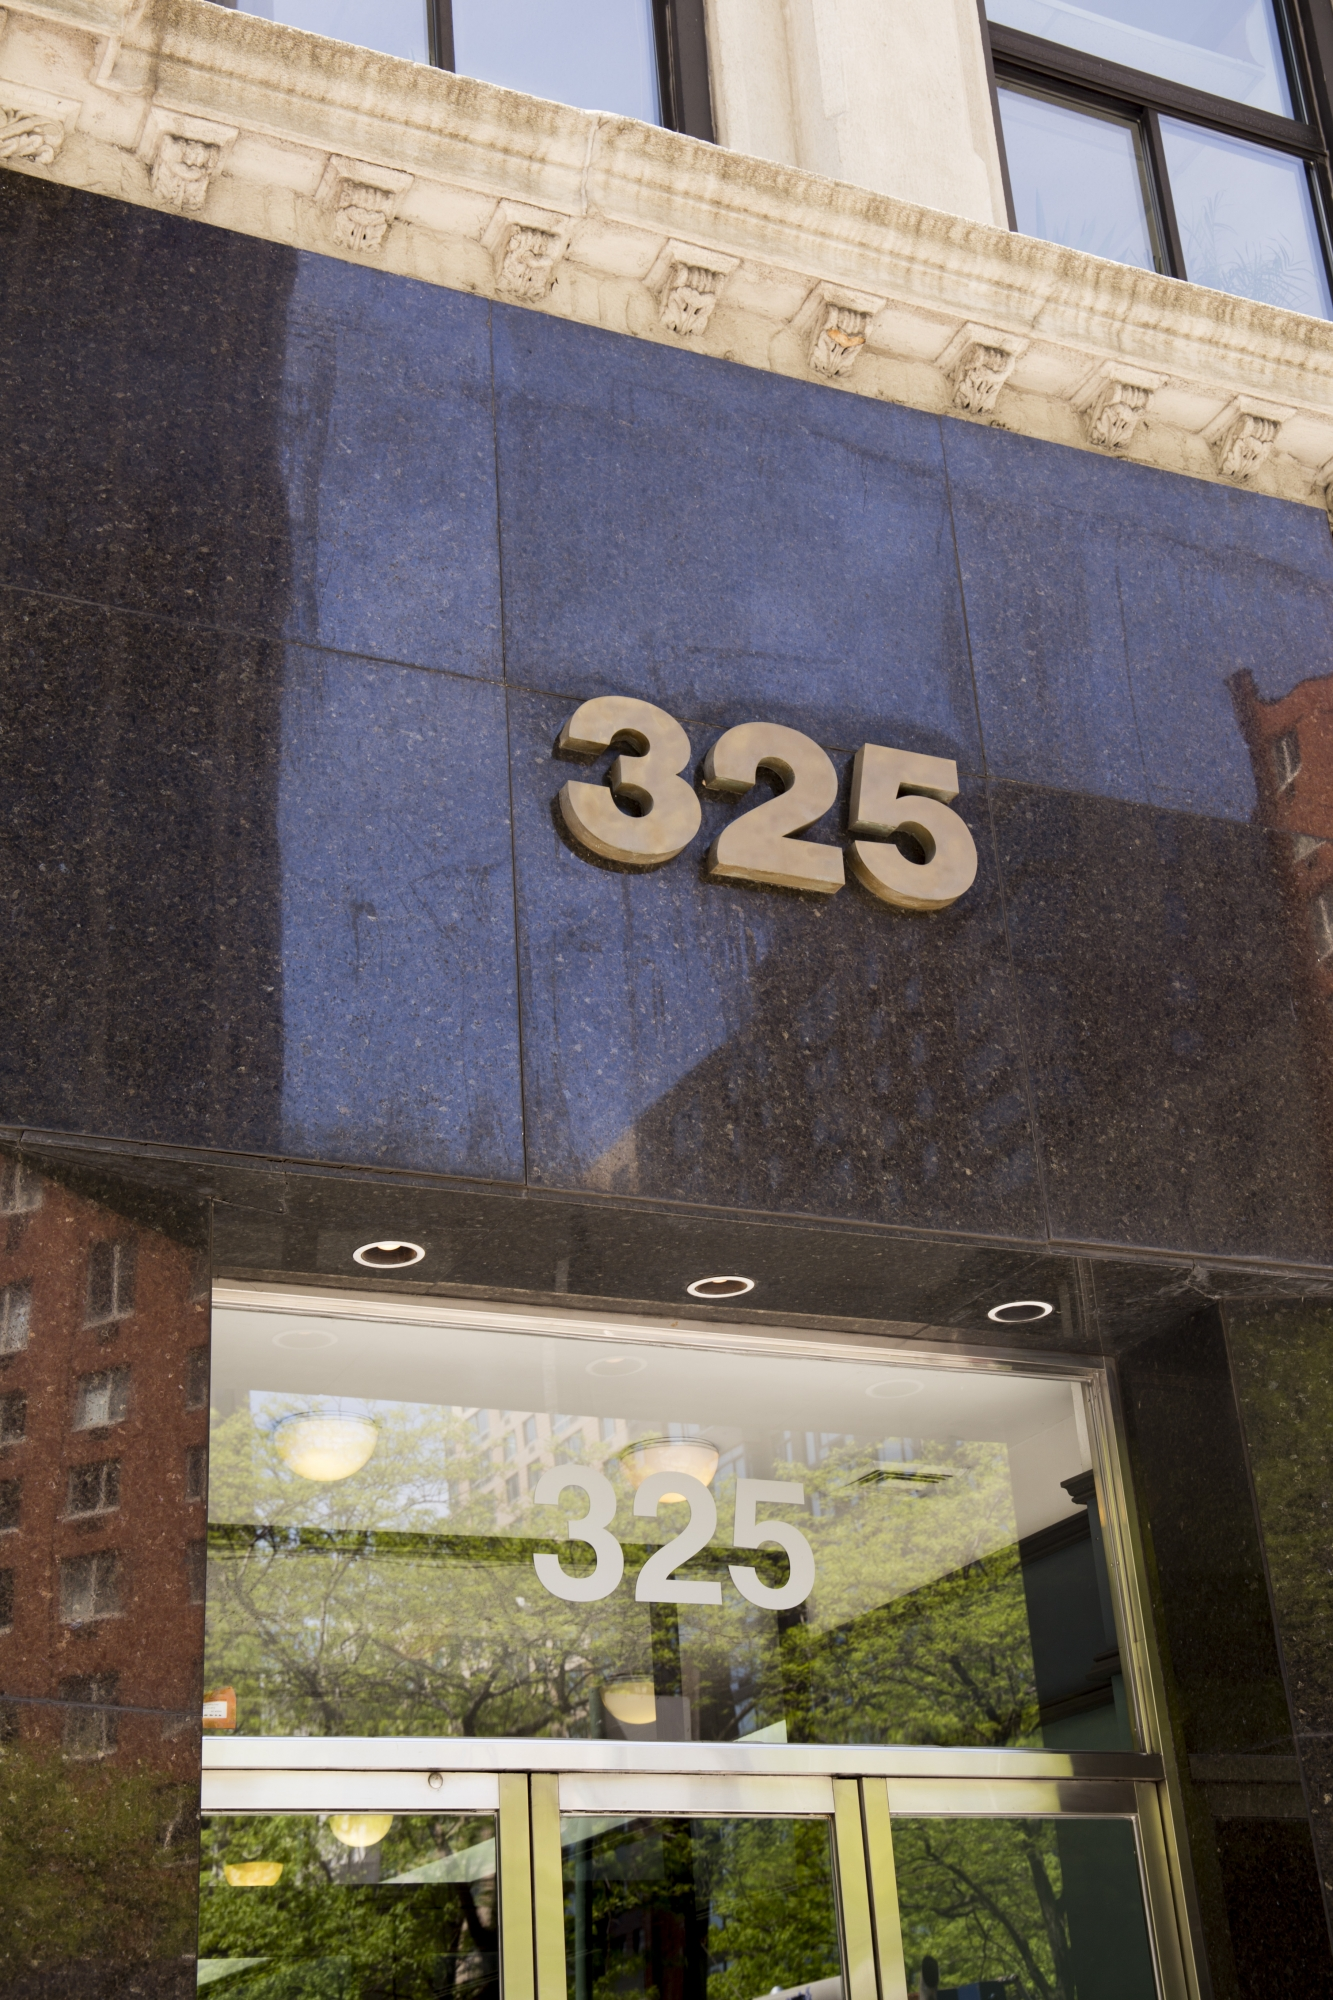 Reid B. Wissner Law Offices at 325 Broadway in New York City